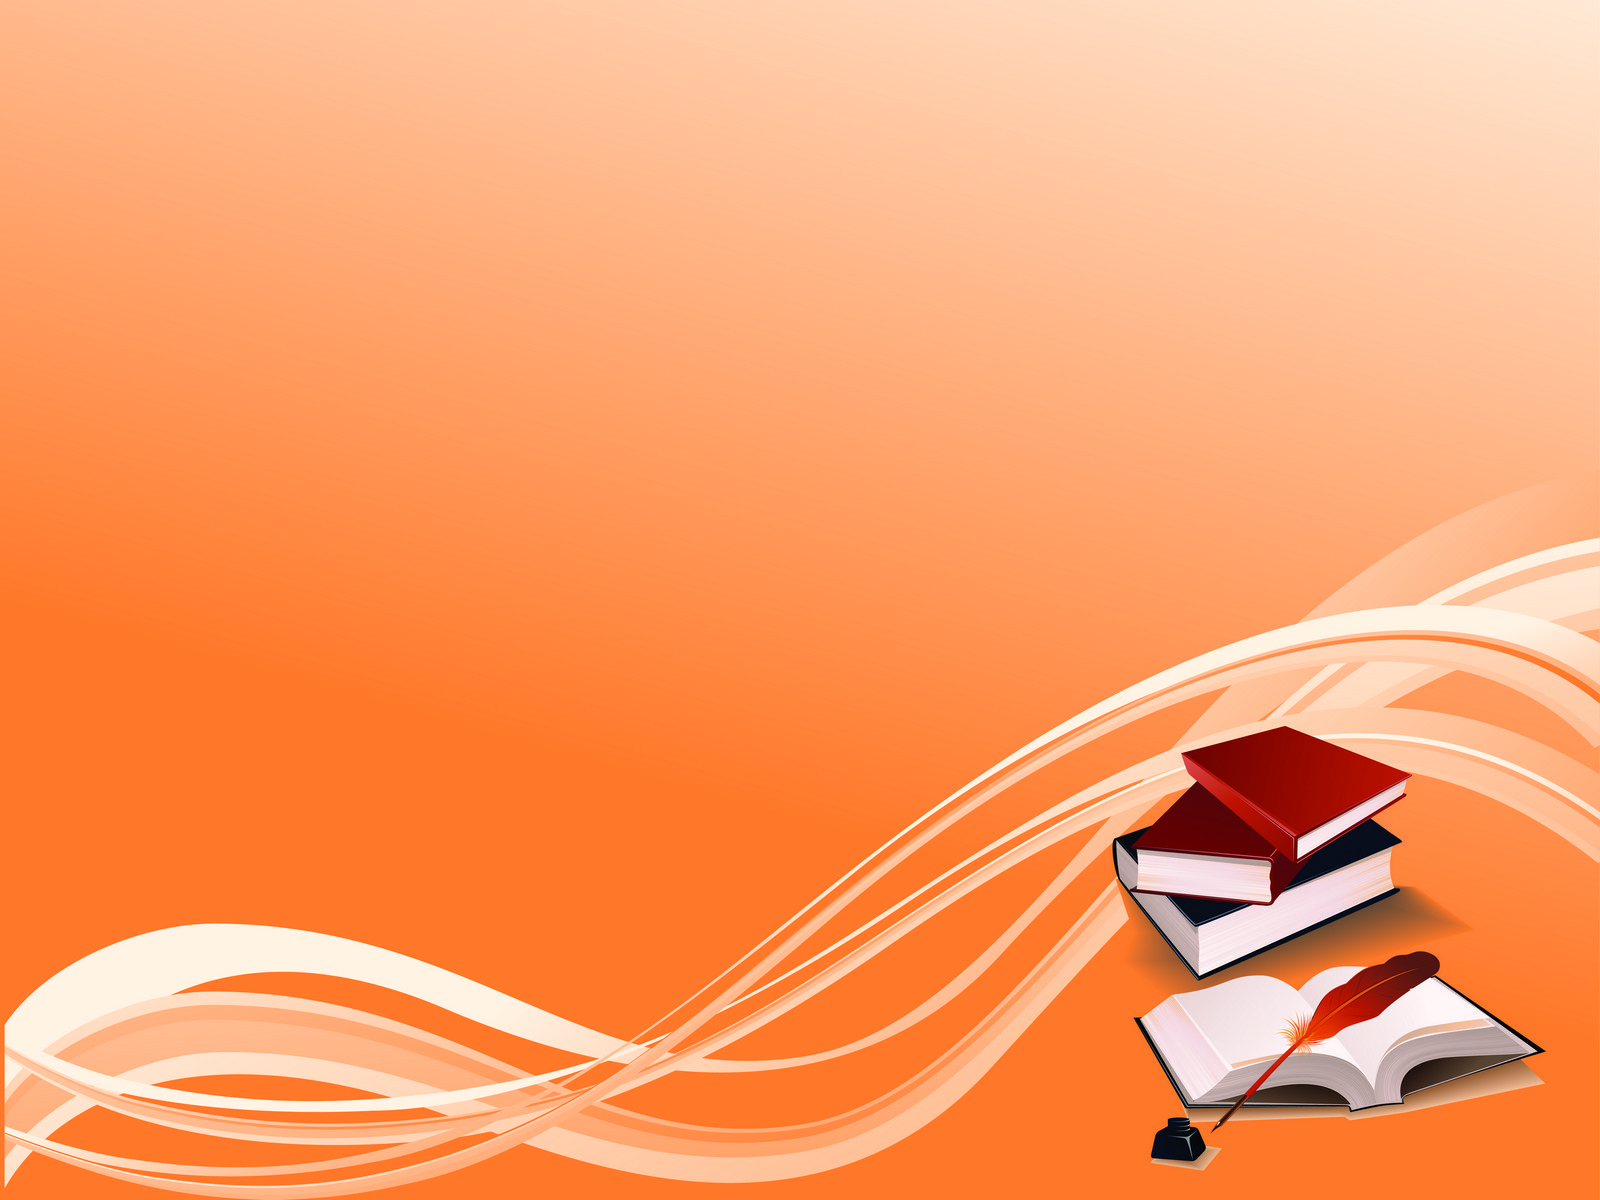 Books On Orange Bg PPT Backgrounds